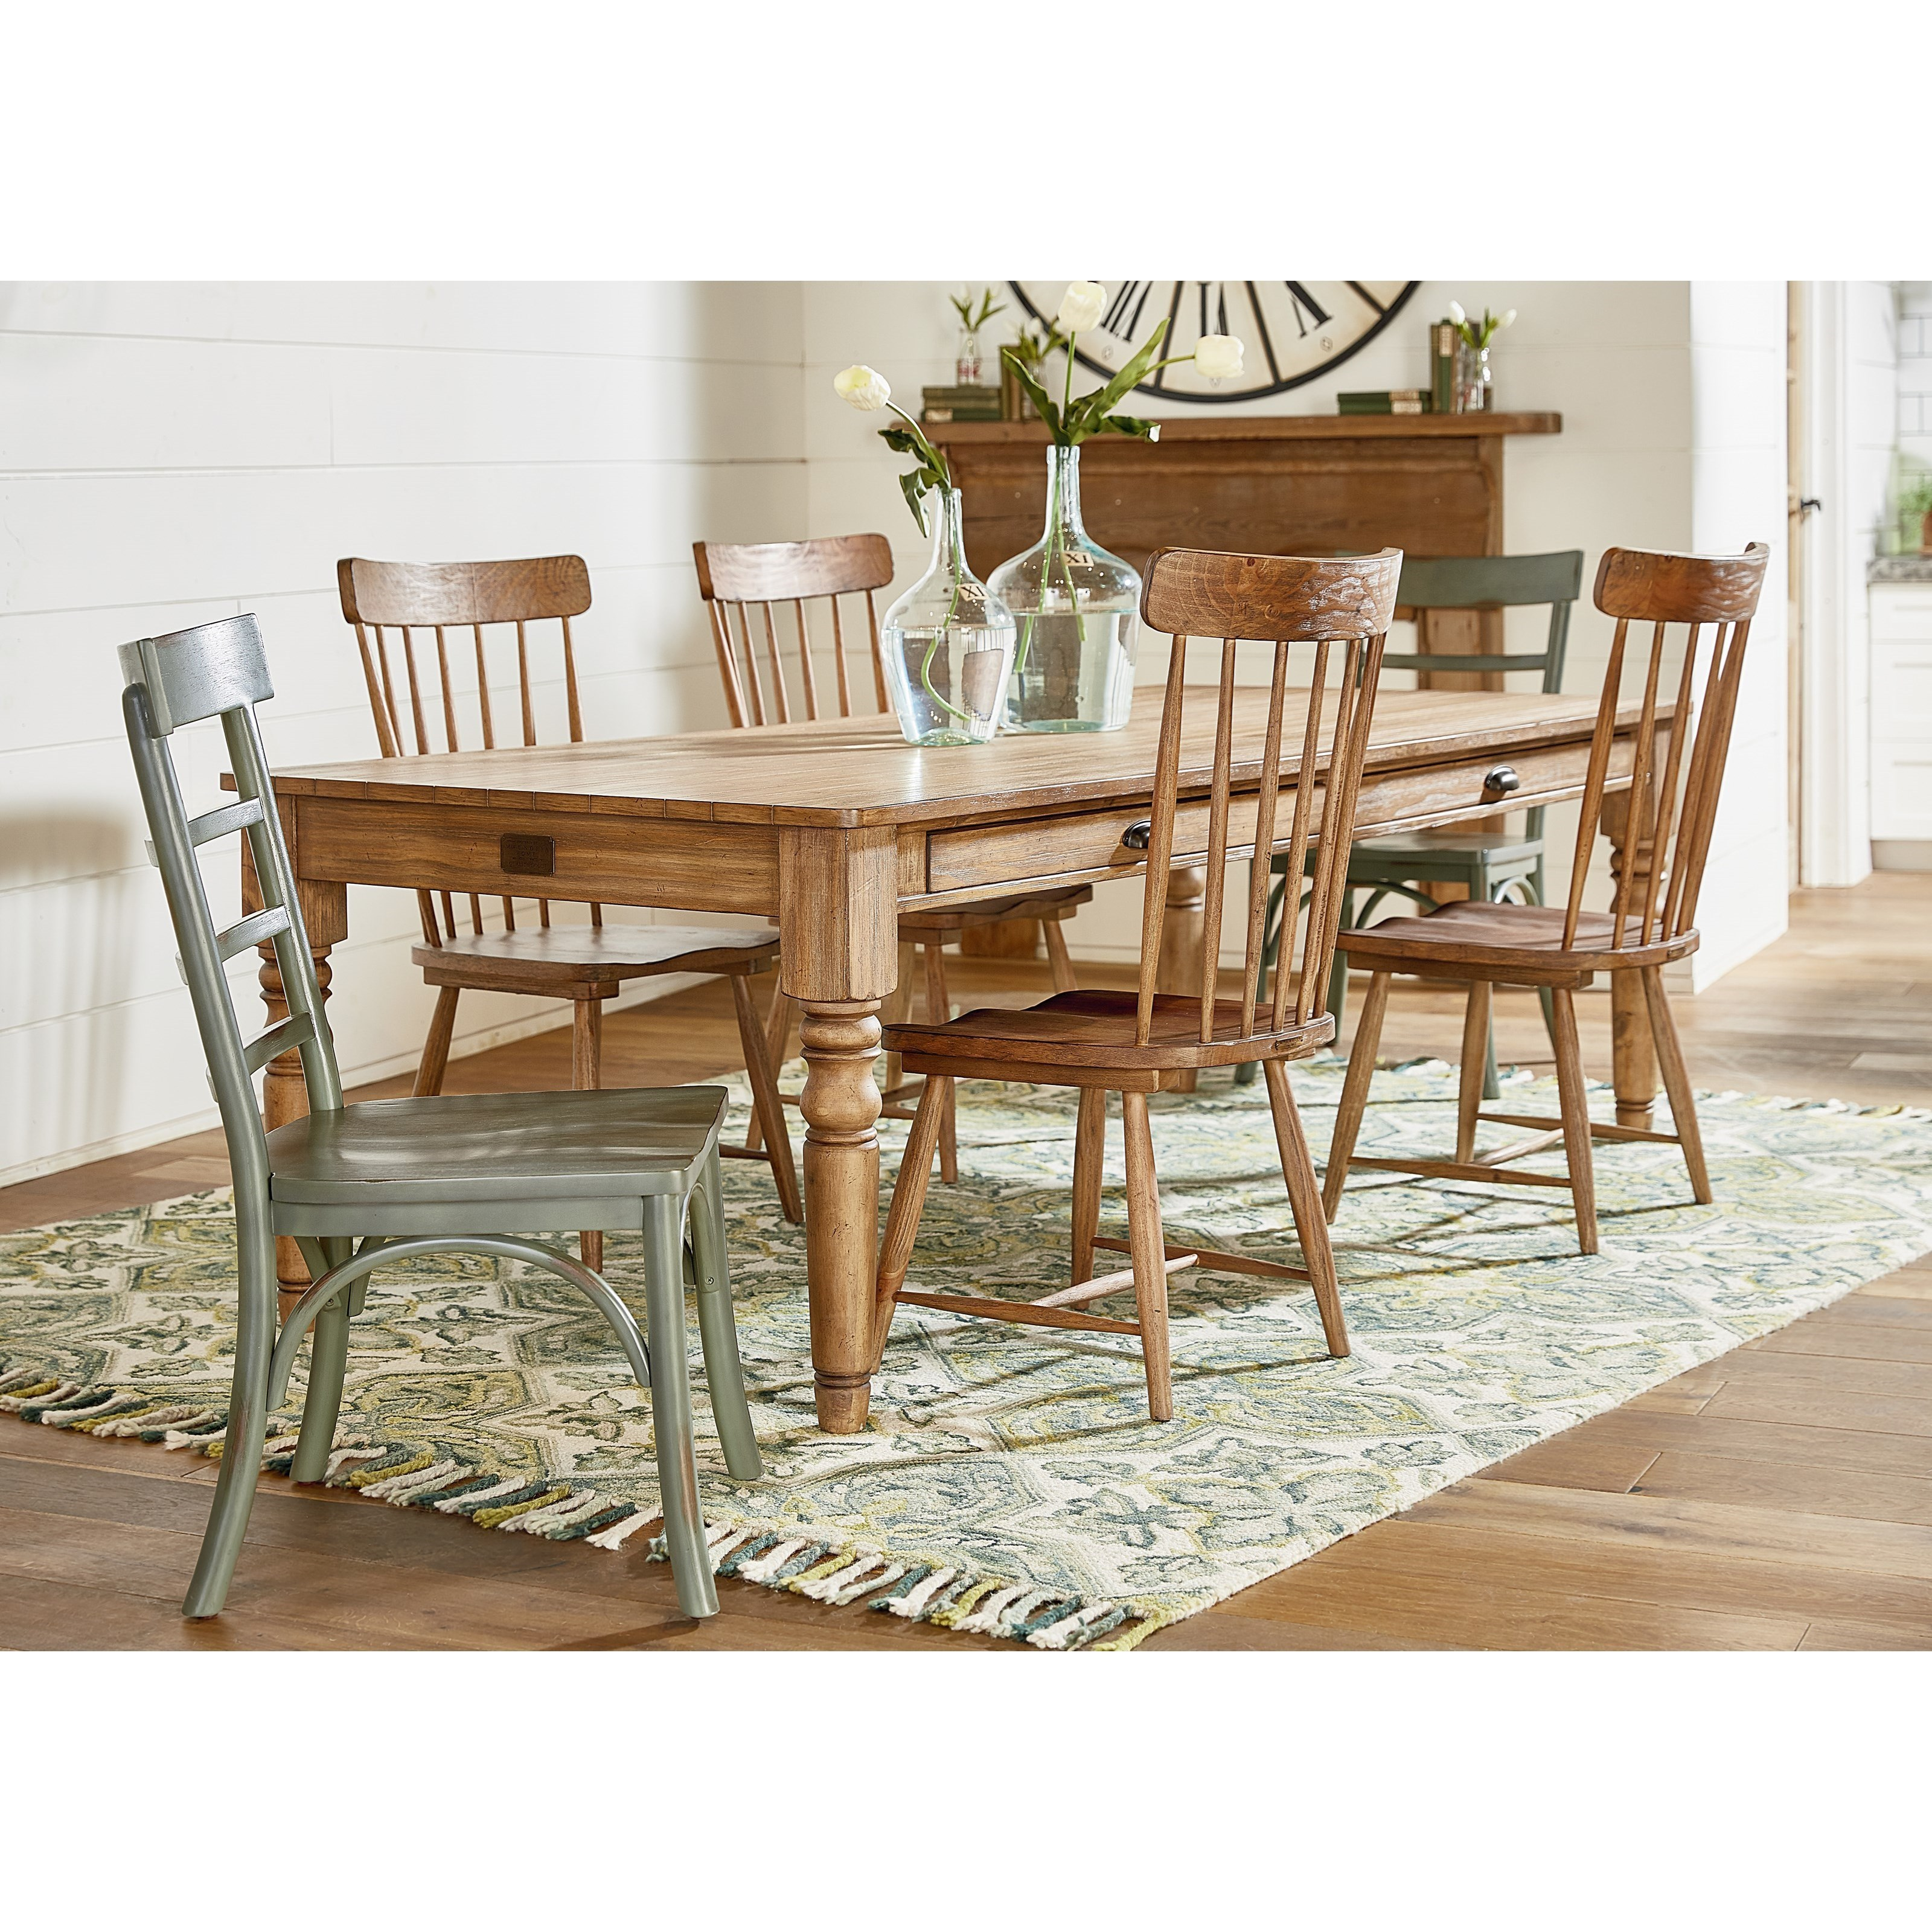 Merveilleux Magnolia Home By Joanna Gaines PrimitiveTable And Chair Set ...